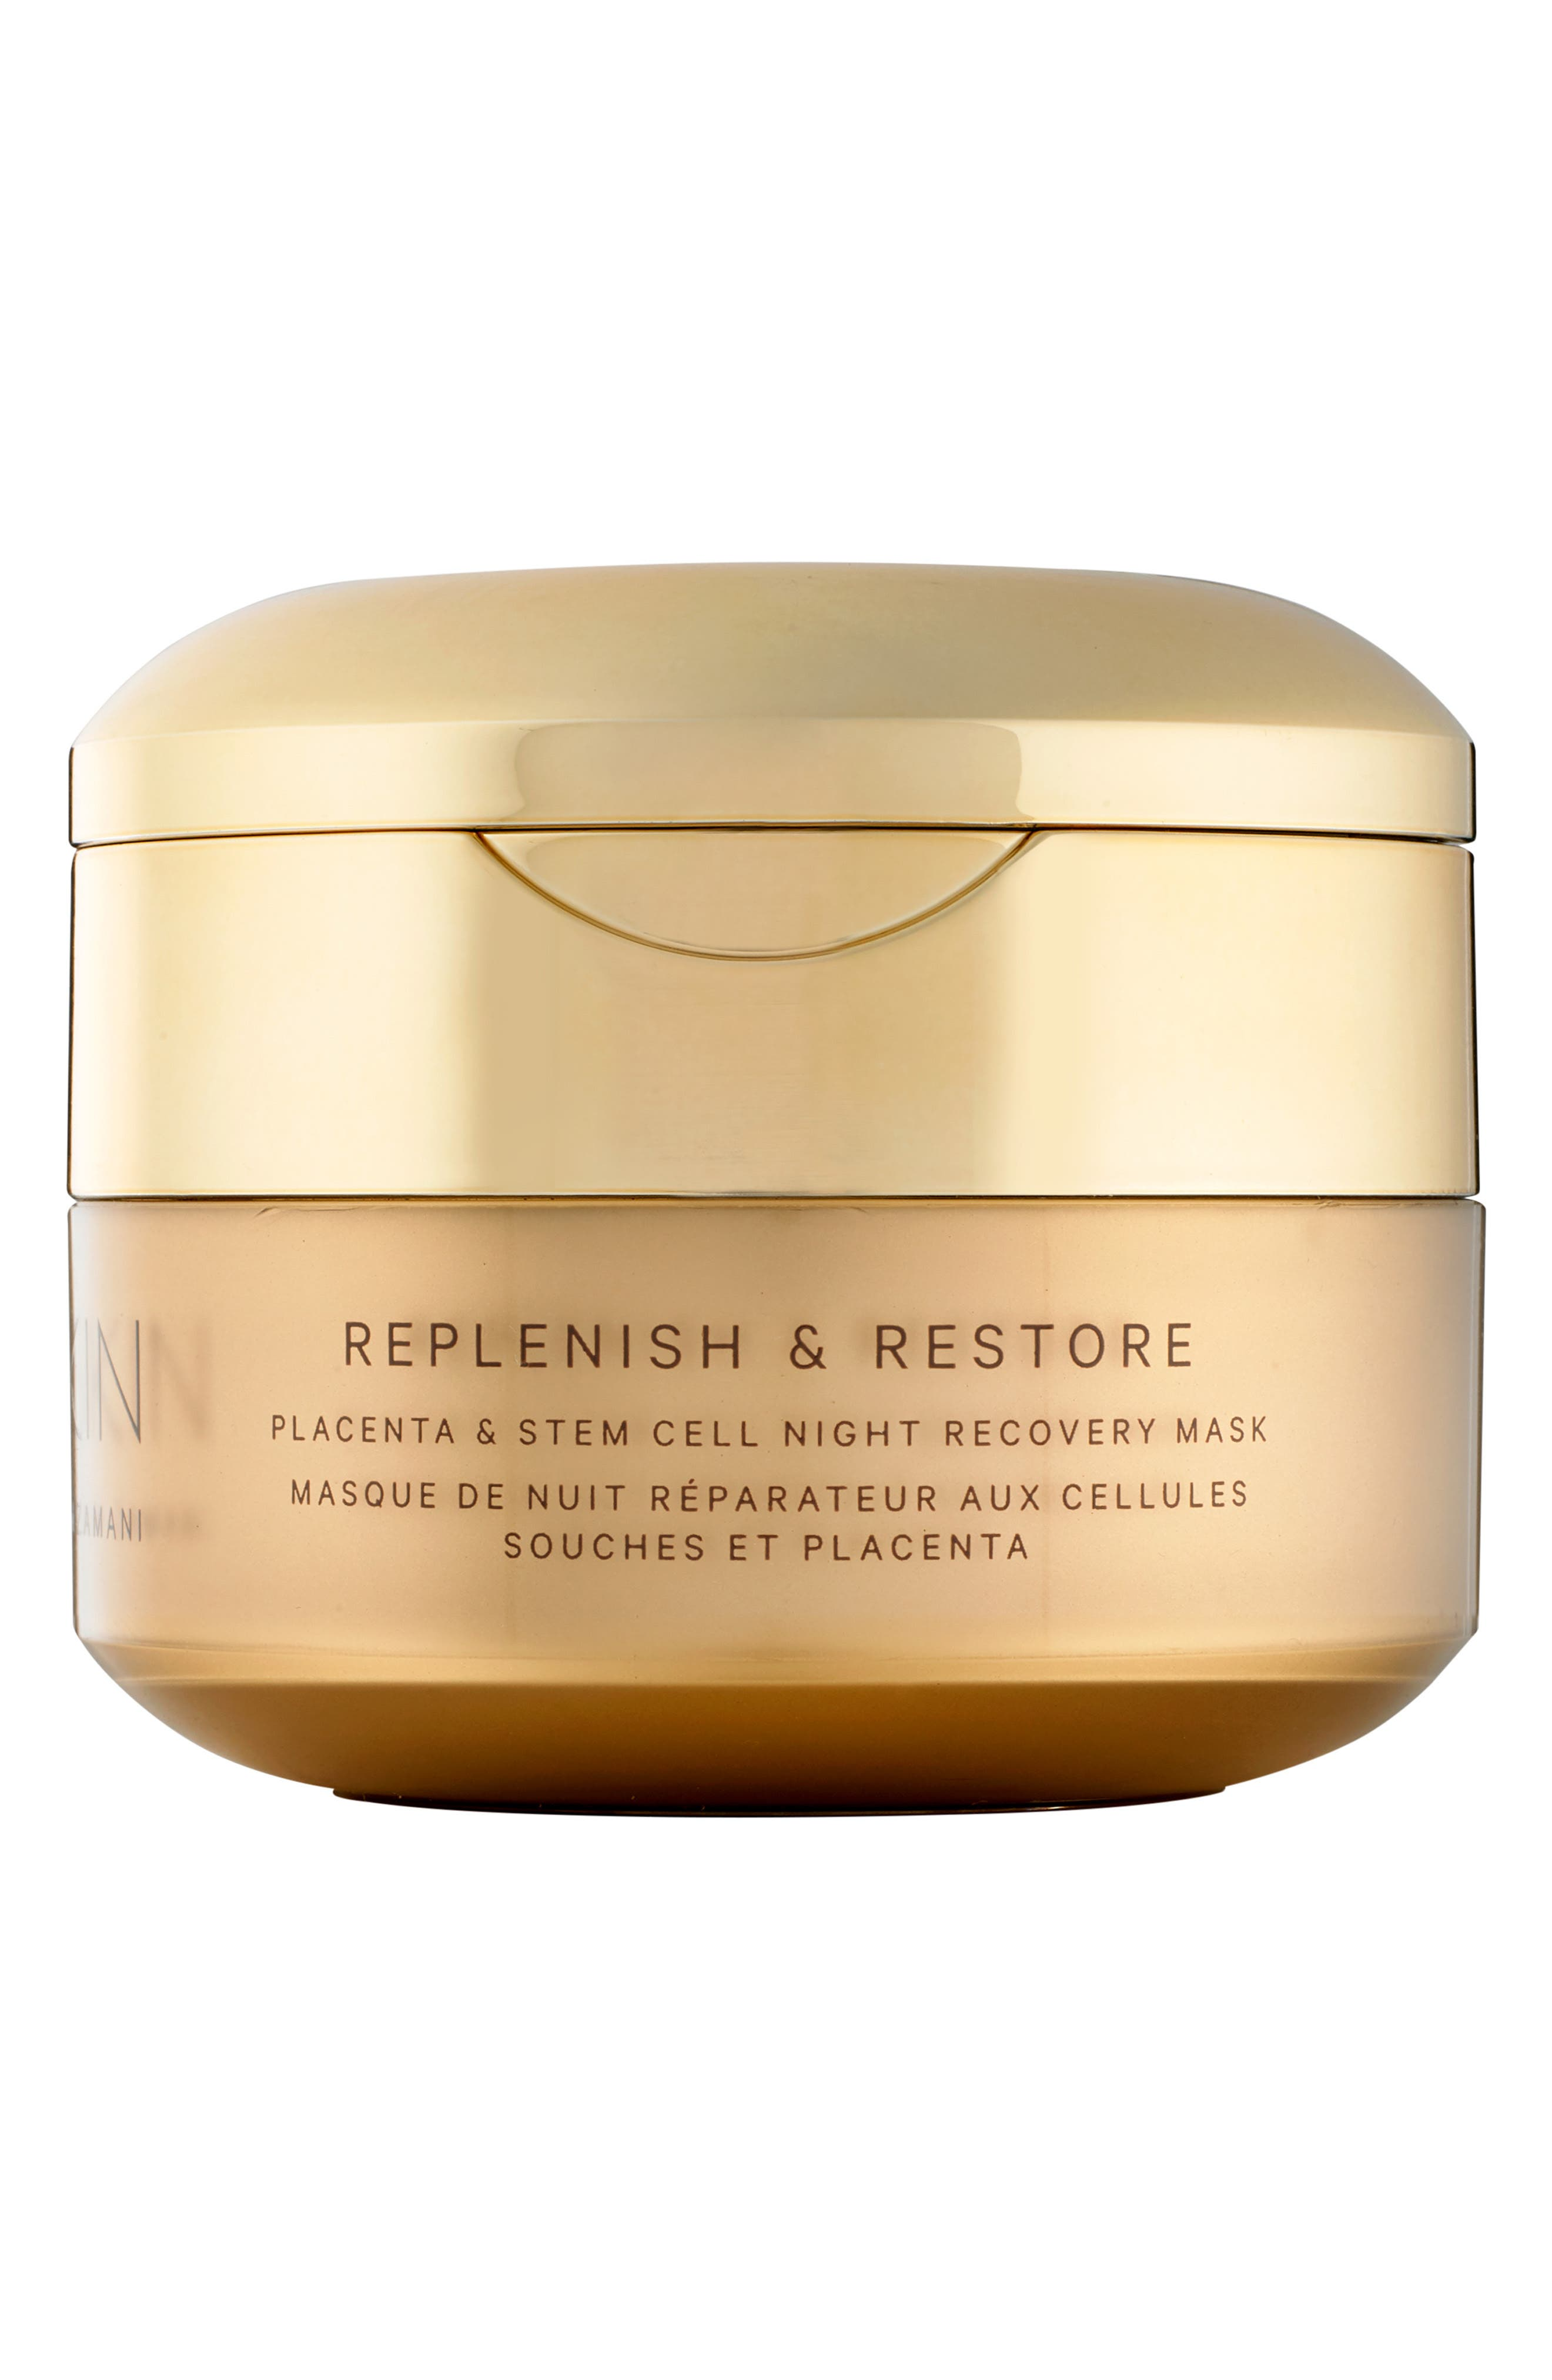 Replenish & Restore Placenta & Stem Cell Night Recovery Mask